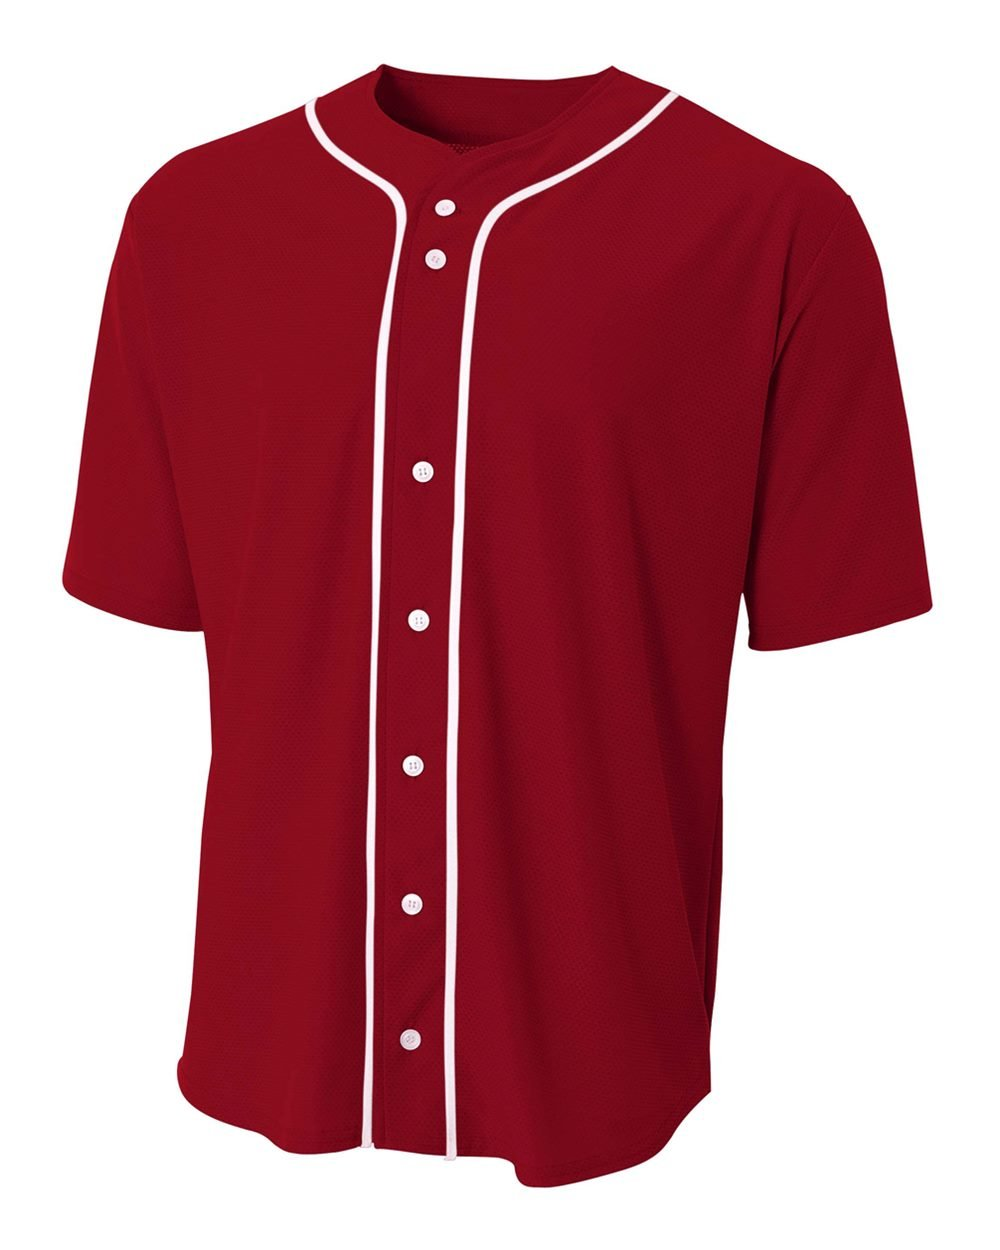 A4 Sportswear Cardinal Youth Large (Blank) Full-Button Baseball Wicking Jersey by A4 Sportswear